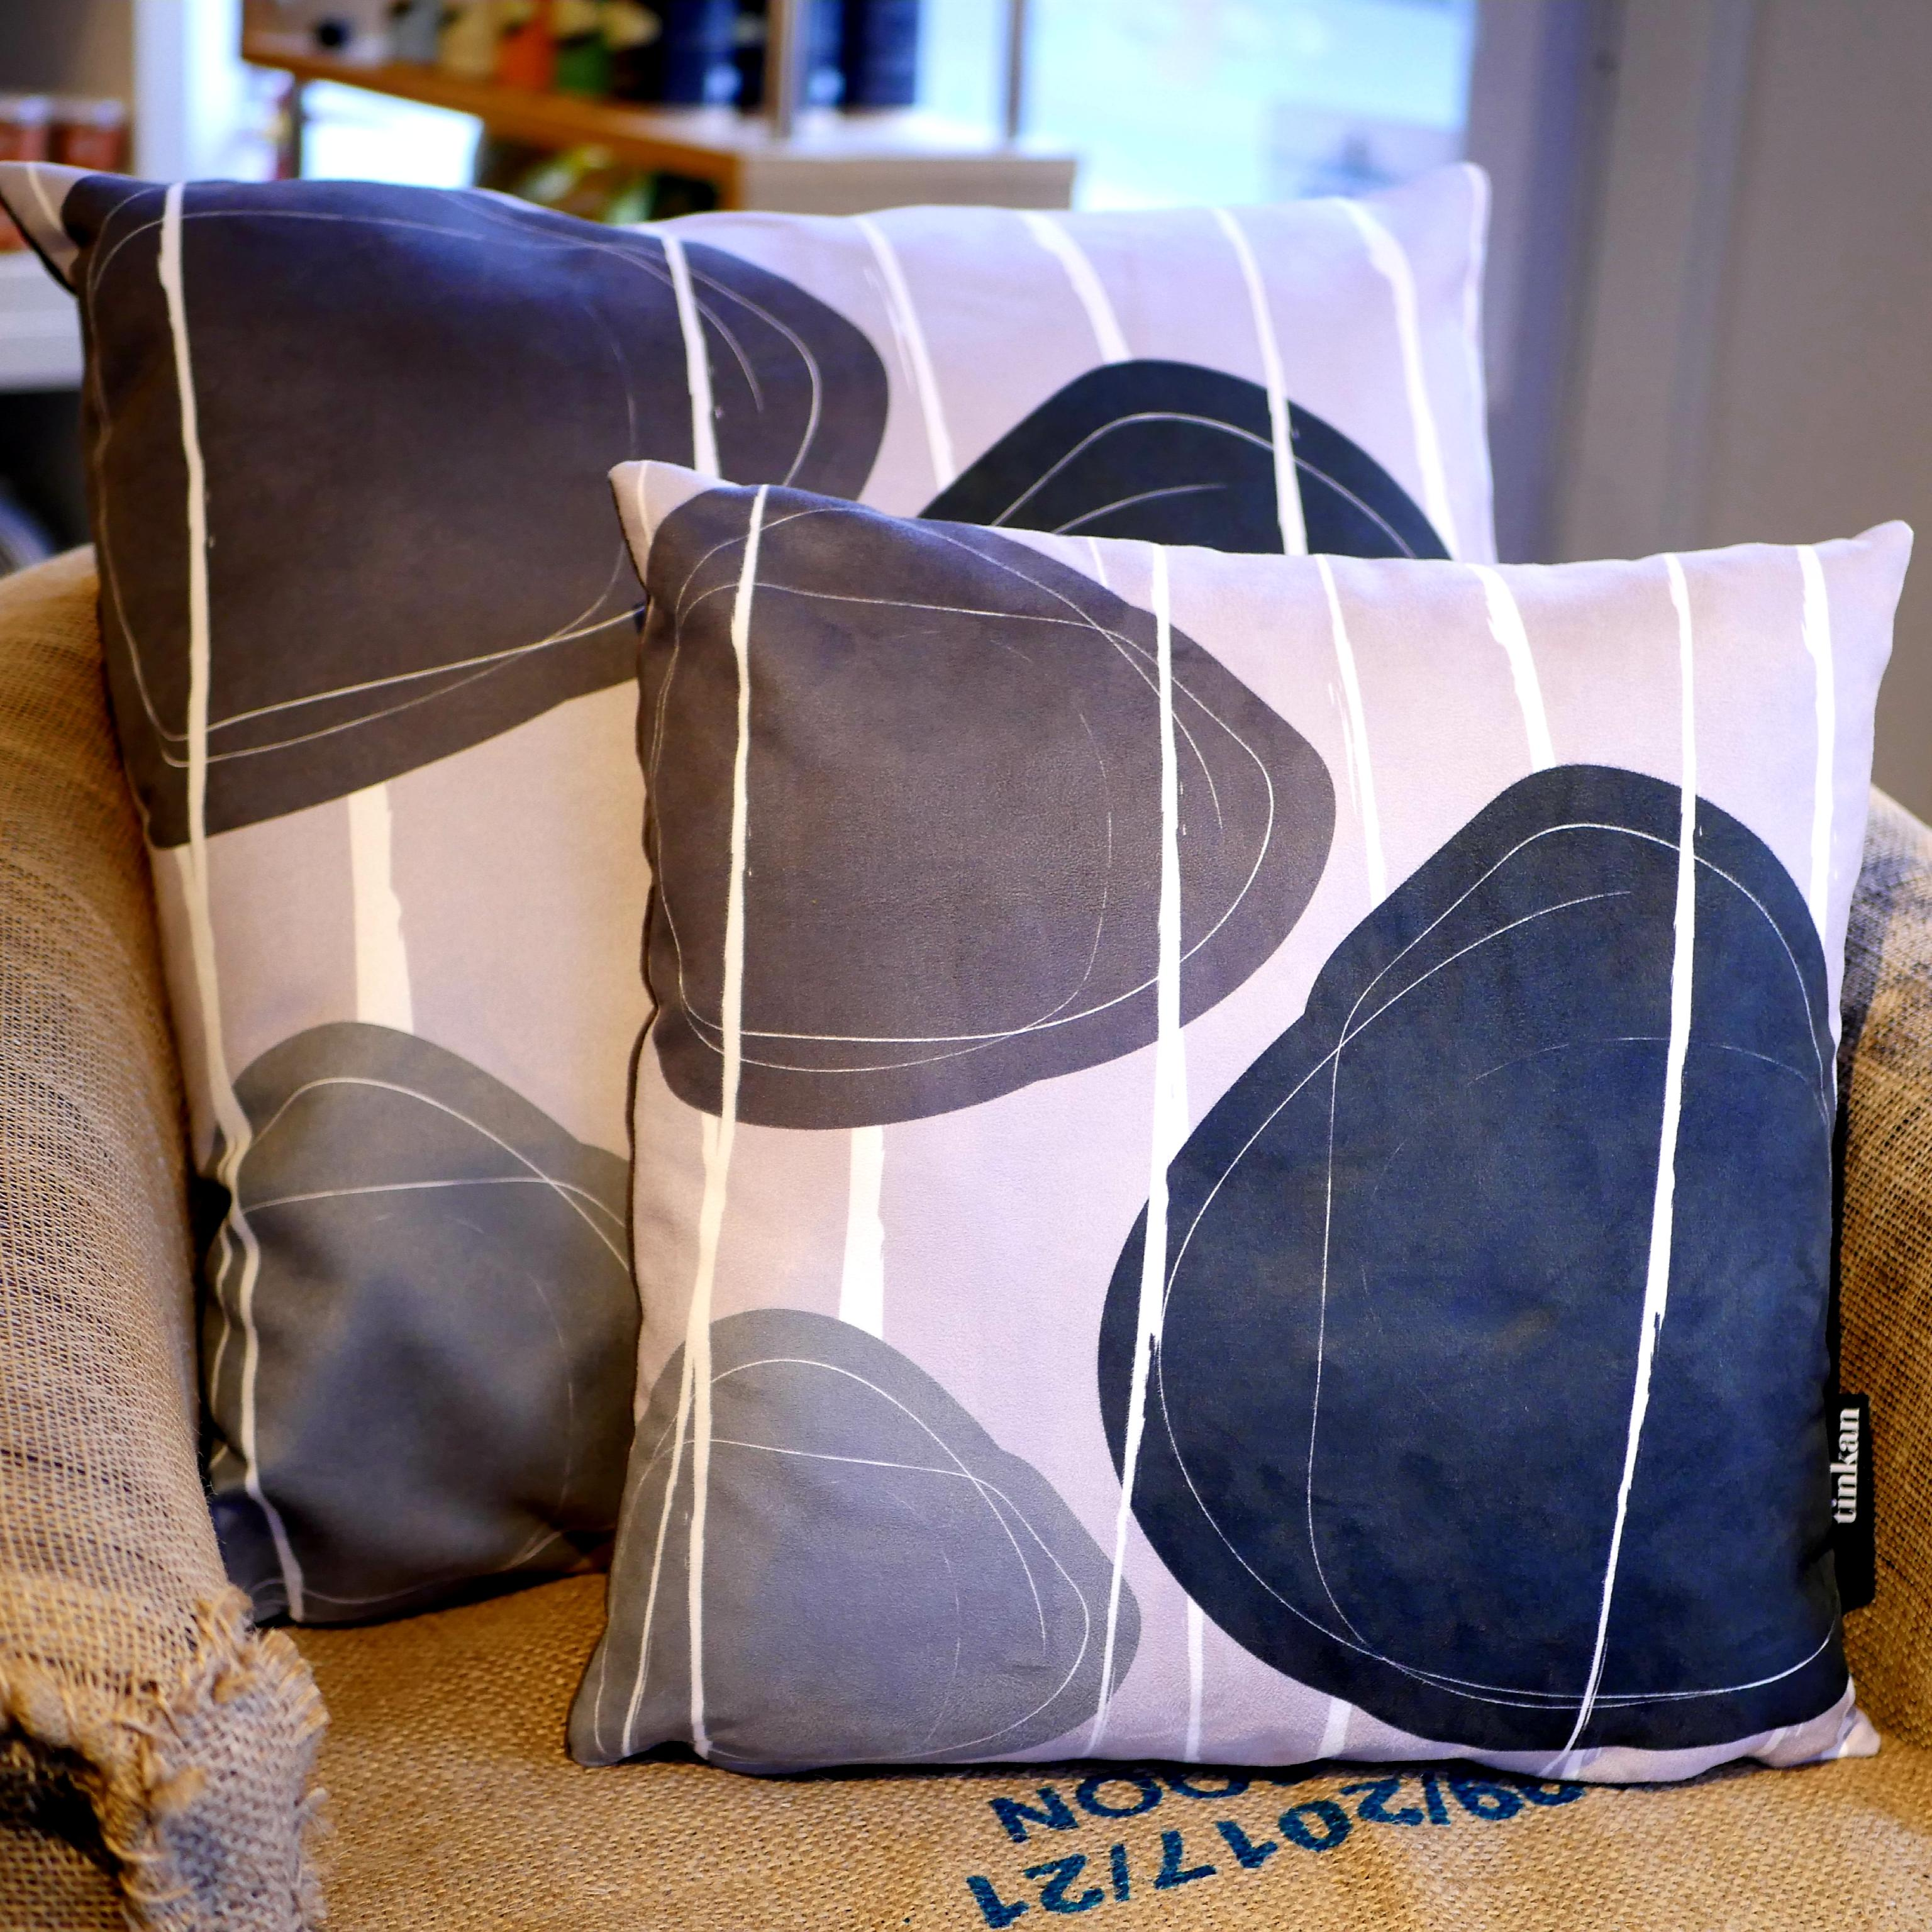 Black, charcoal grey & light grey faux suede soft feel Abstract Pebbles Cushions, 43cm & 57cm square, with luxury inner pads designed by thetinkan. VIEW PRODUCT >>